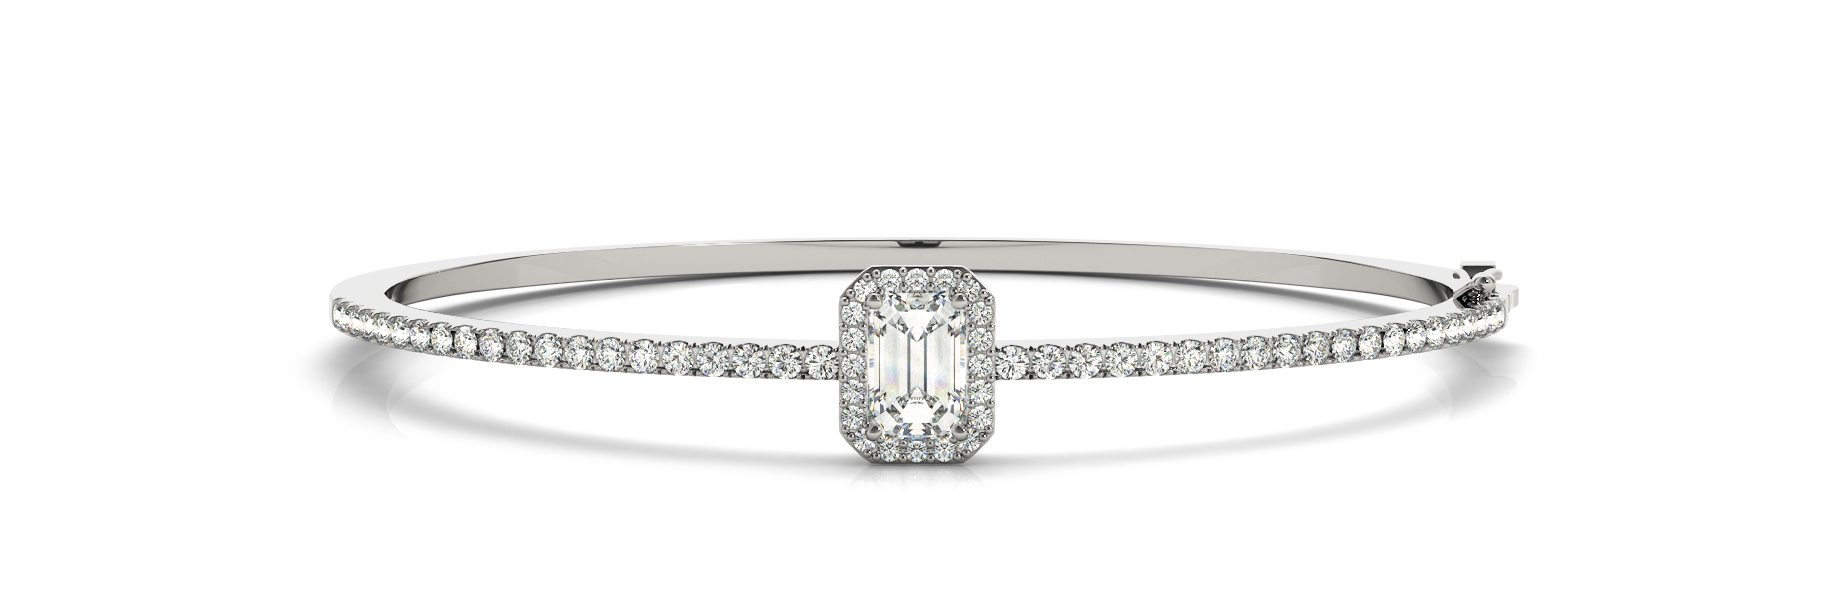 Emerald & Round Diamond Center Stone Halo Bangle